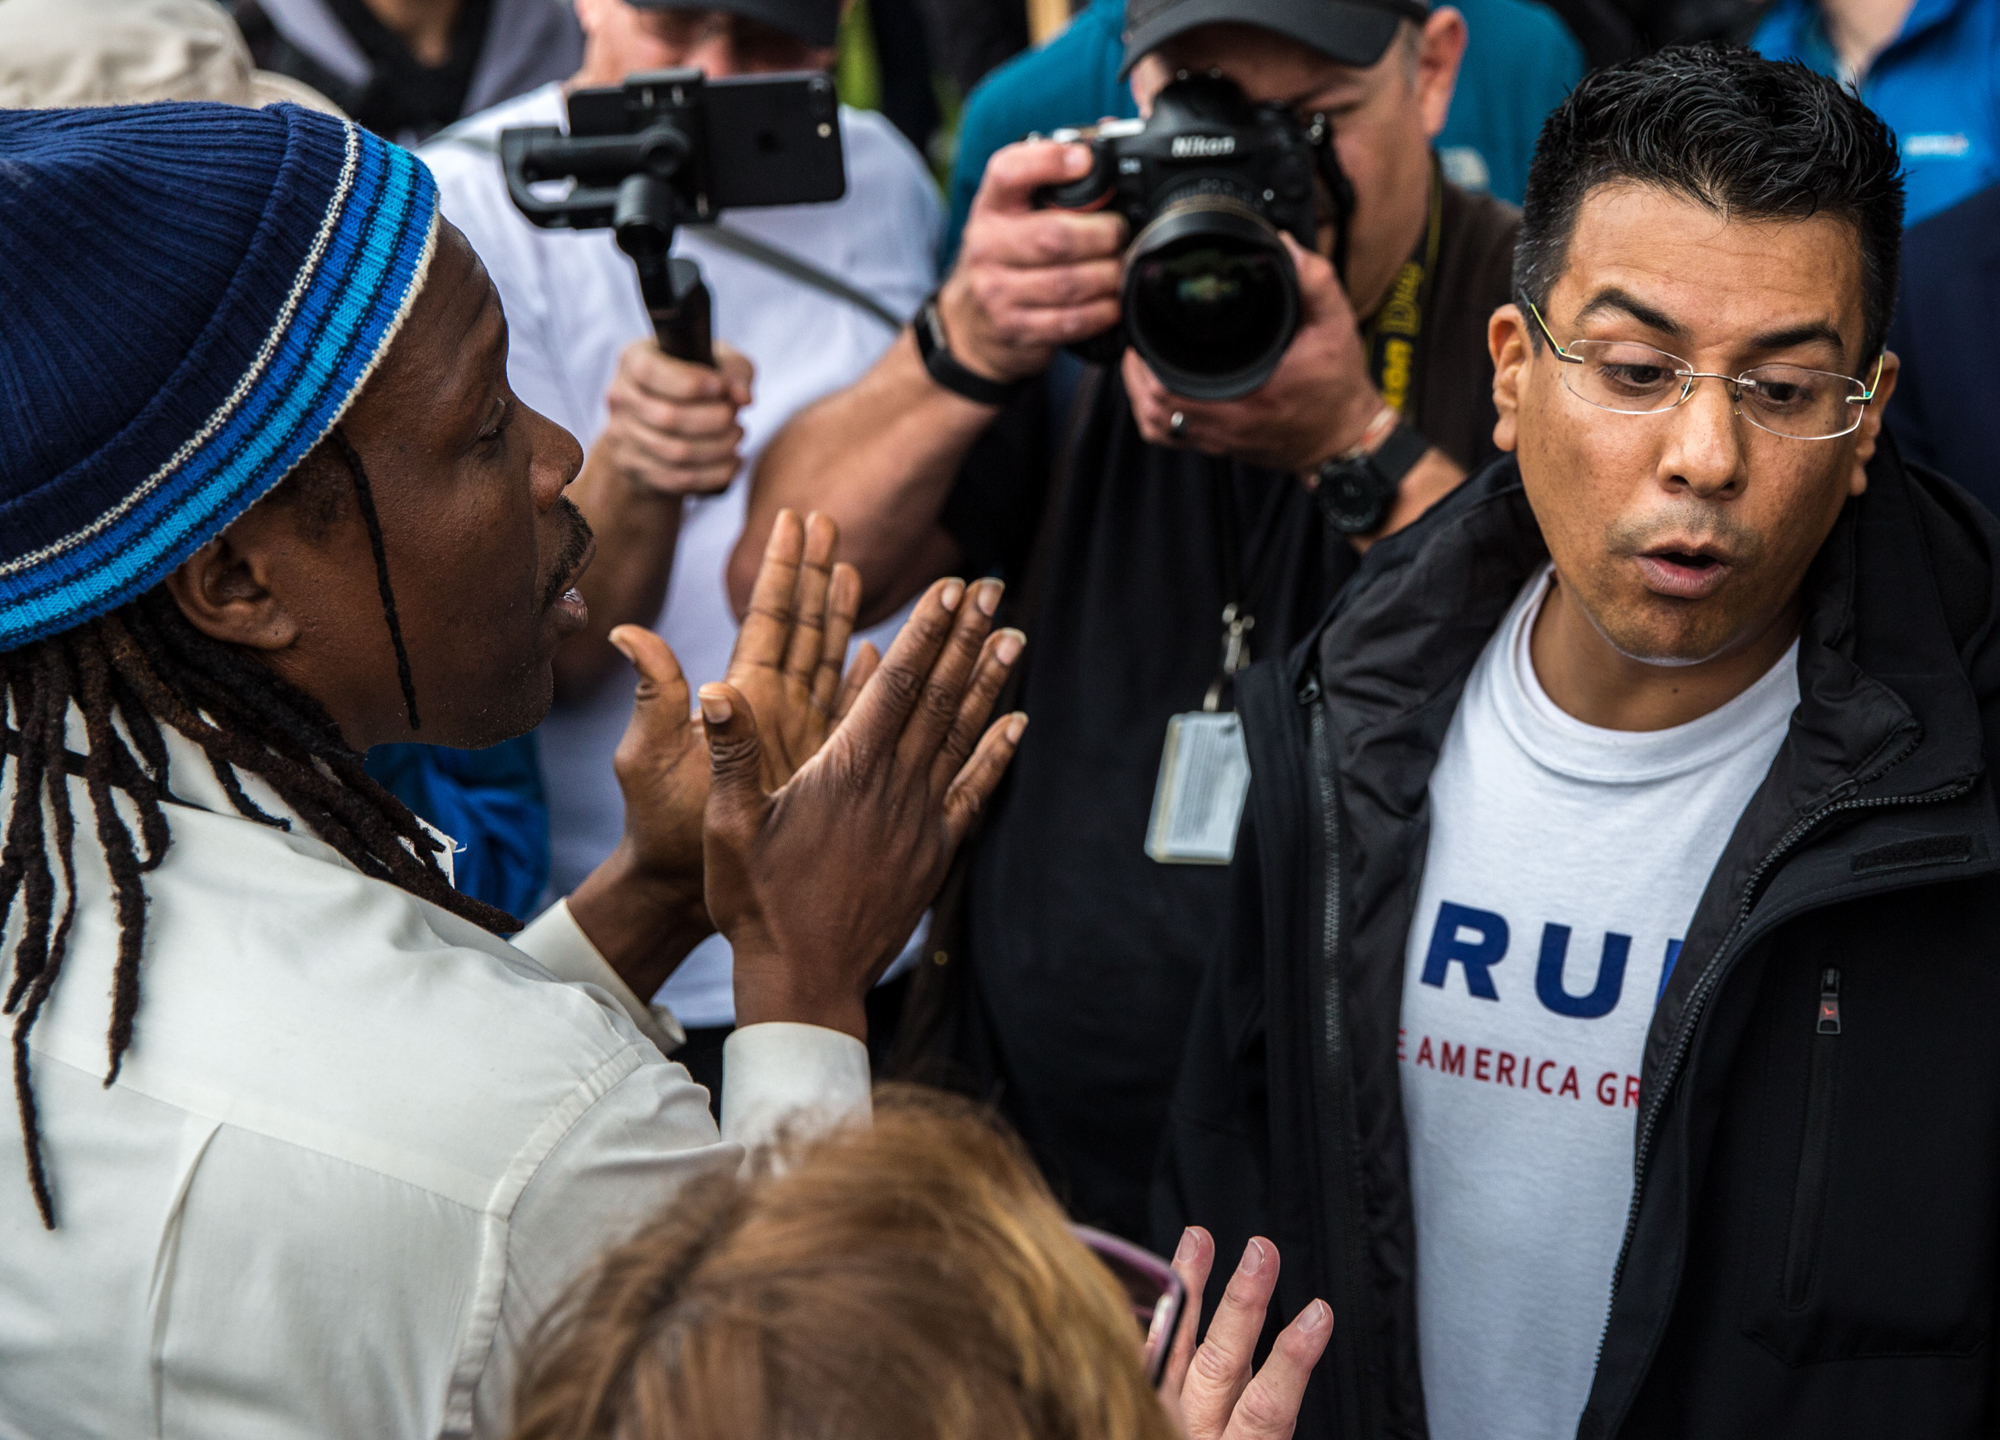 A President Donald J., Trump Supporter Danny Rodriguez (right) and anti Trump Pastor Cue Jn-Marie (left), a former Virgin Records rapper, turned evangelist discuss the civil rights movement peacefully at Beverly Gardens Park during a anti-Trump protest in Beverly Hills, California, on March 13, 2018. As President Donald Trump made his way to a fundraiser in Beverly Hills, protesters were there to greet him with their dissent during Tuesdays protest. (Photo by: Matthew Martin)